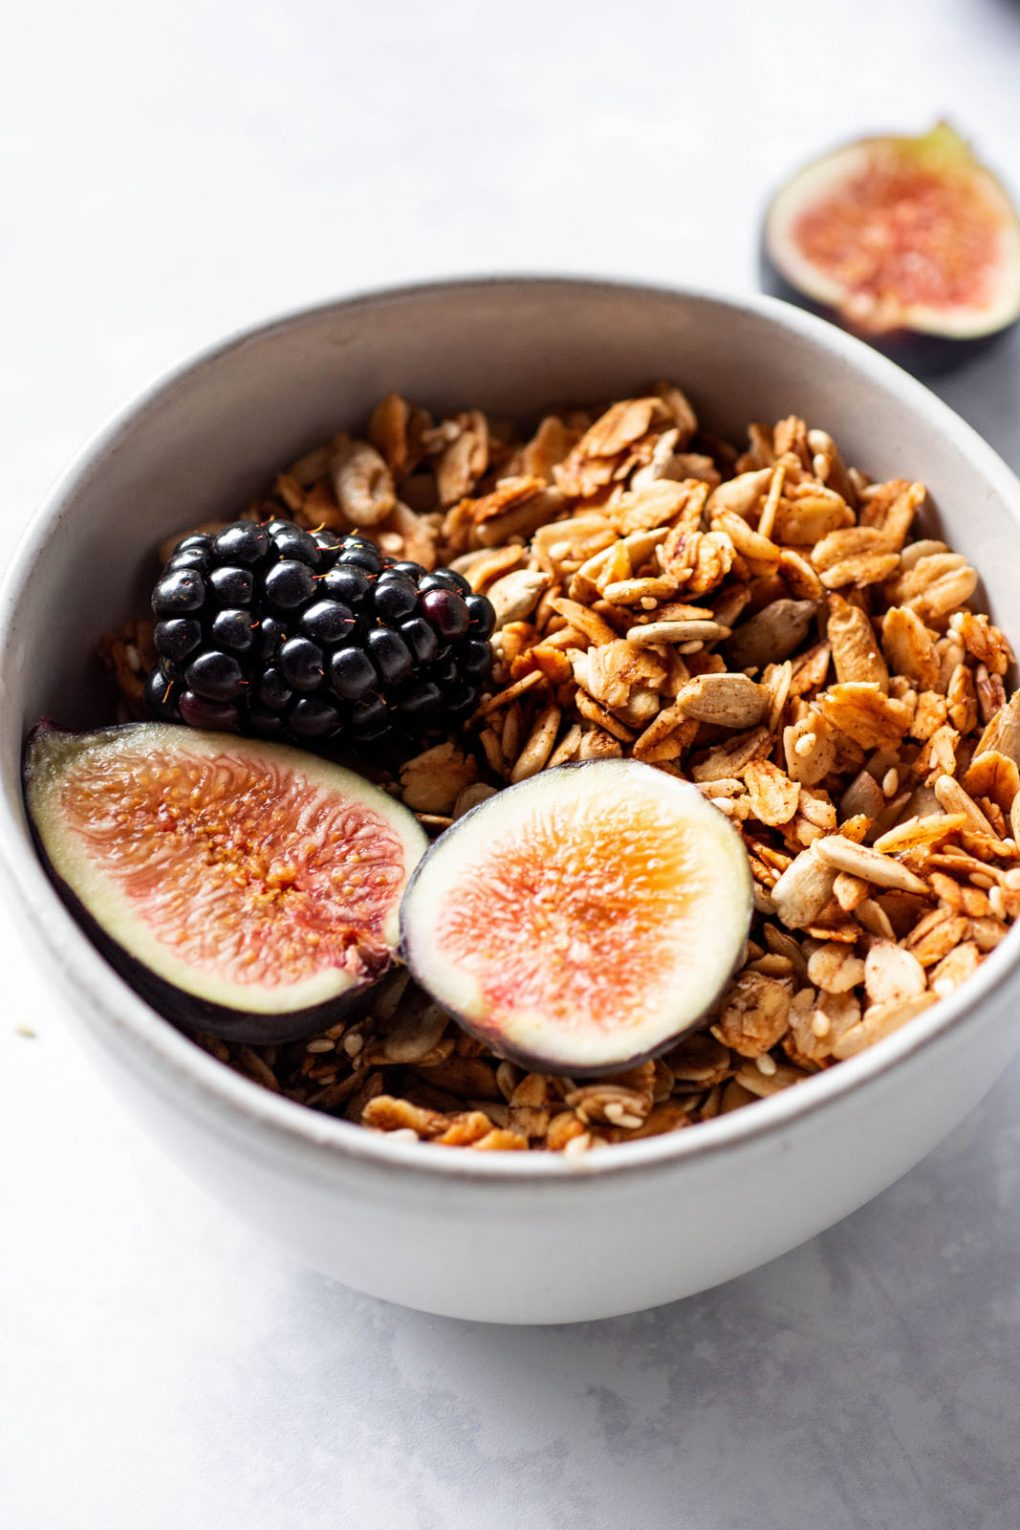 45 degree angle shot of a small white bowl filled with maple sesame granola, cut figs, and blackberries. On a white background with scattered granola around the bowl.